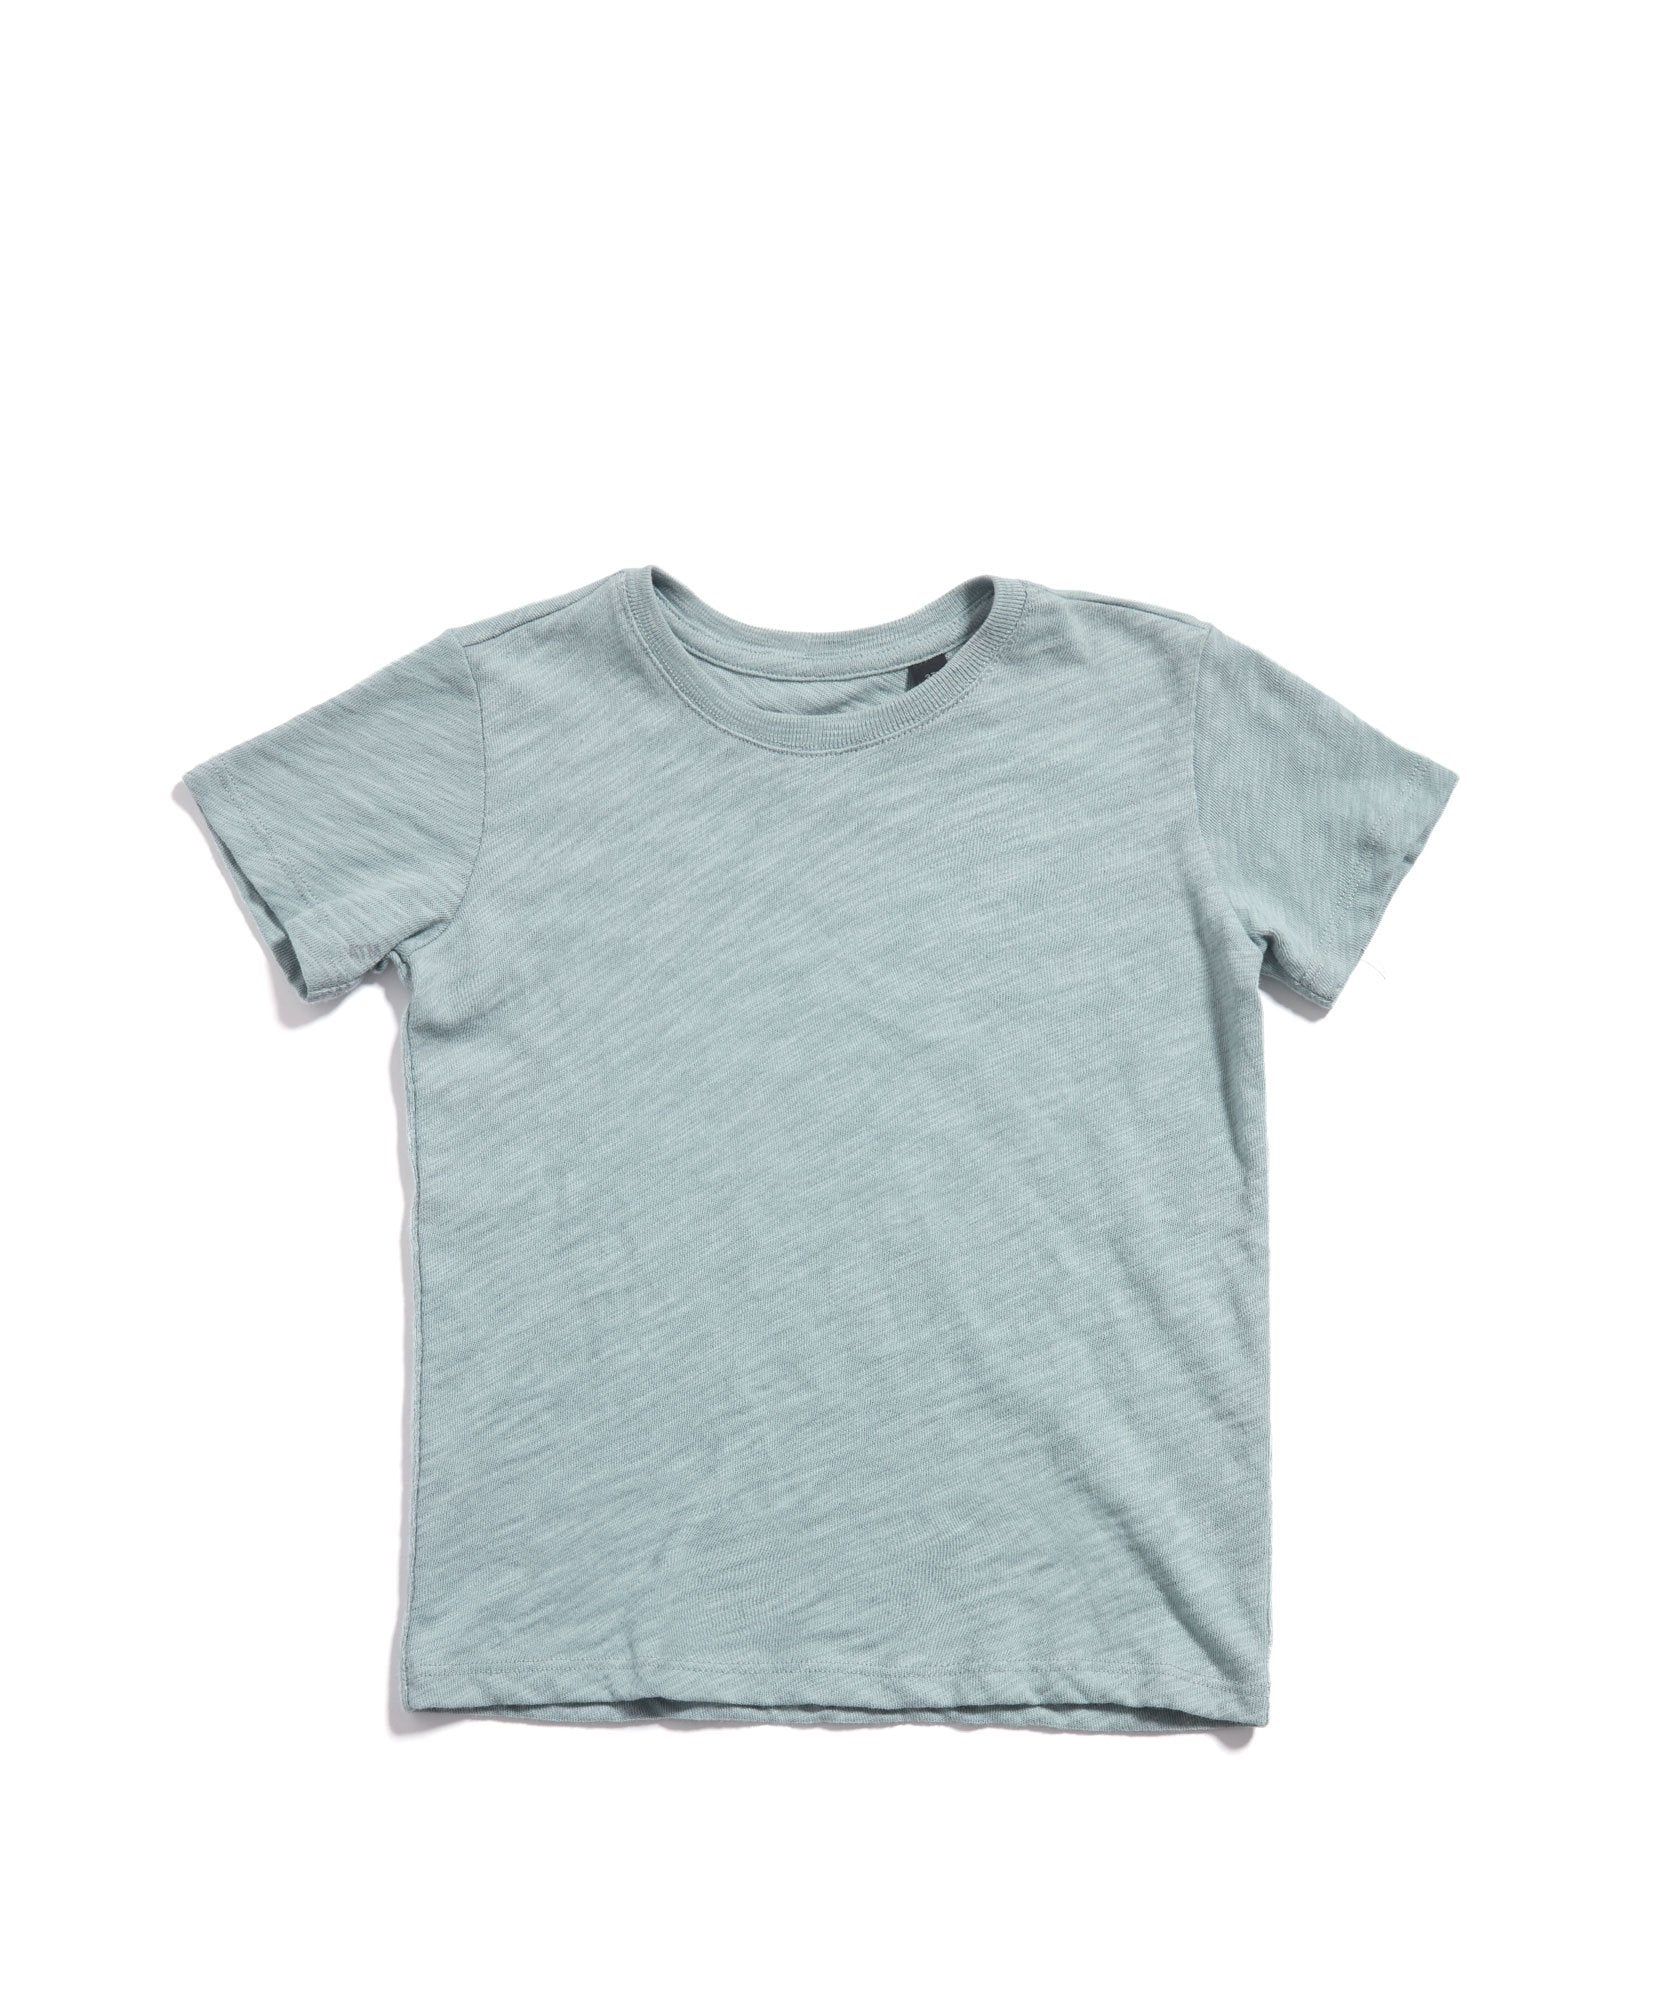 Faded Teal Kids Slub Jersey Short Sleeve Tee - Kid's Cotton Short Sleeve Tee by ATM Anthony Thomas Melillo